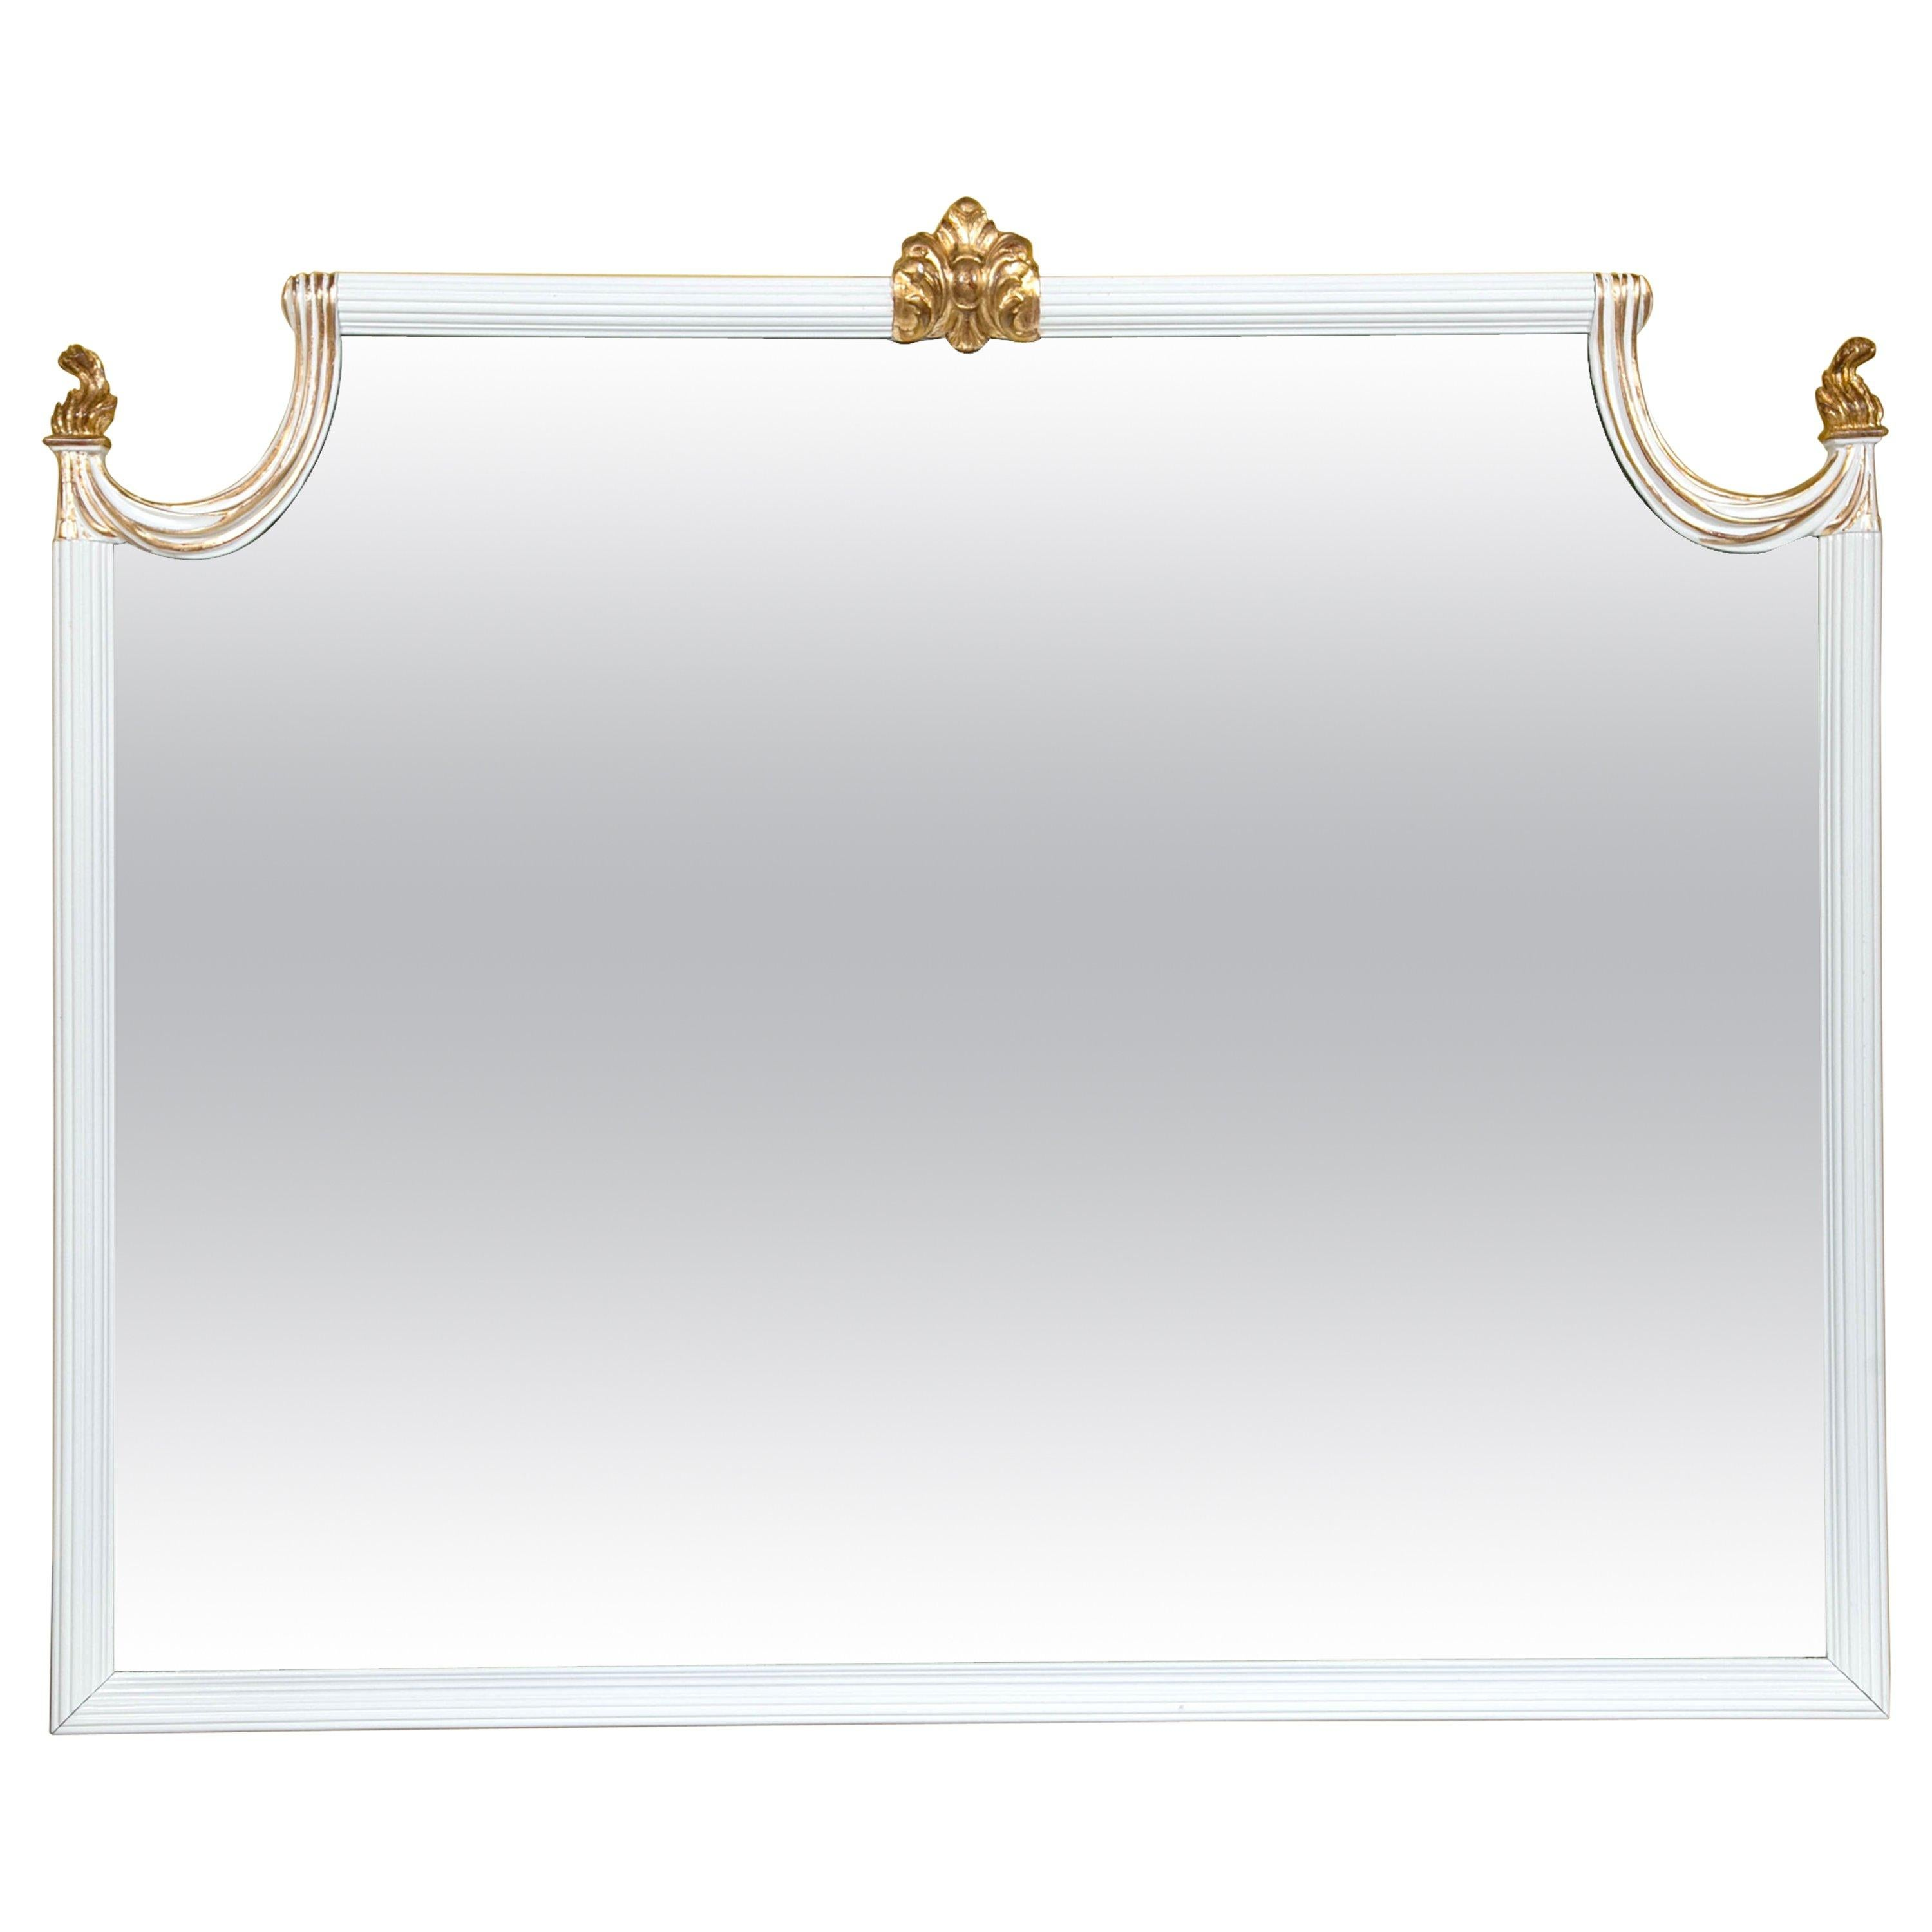 Hollywood Regency White Lacquered Giltwood Wall Console Mirror Paint Decorated